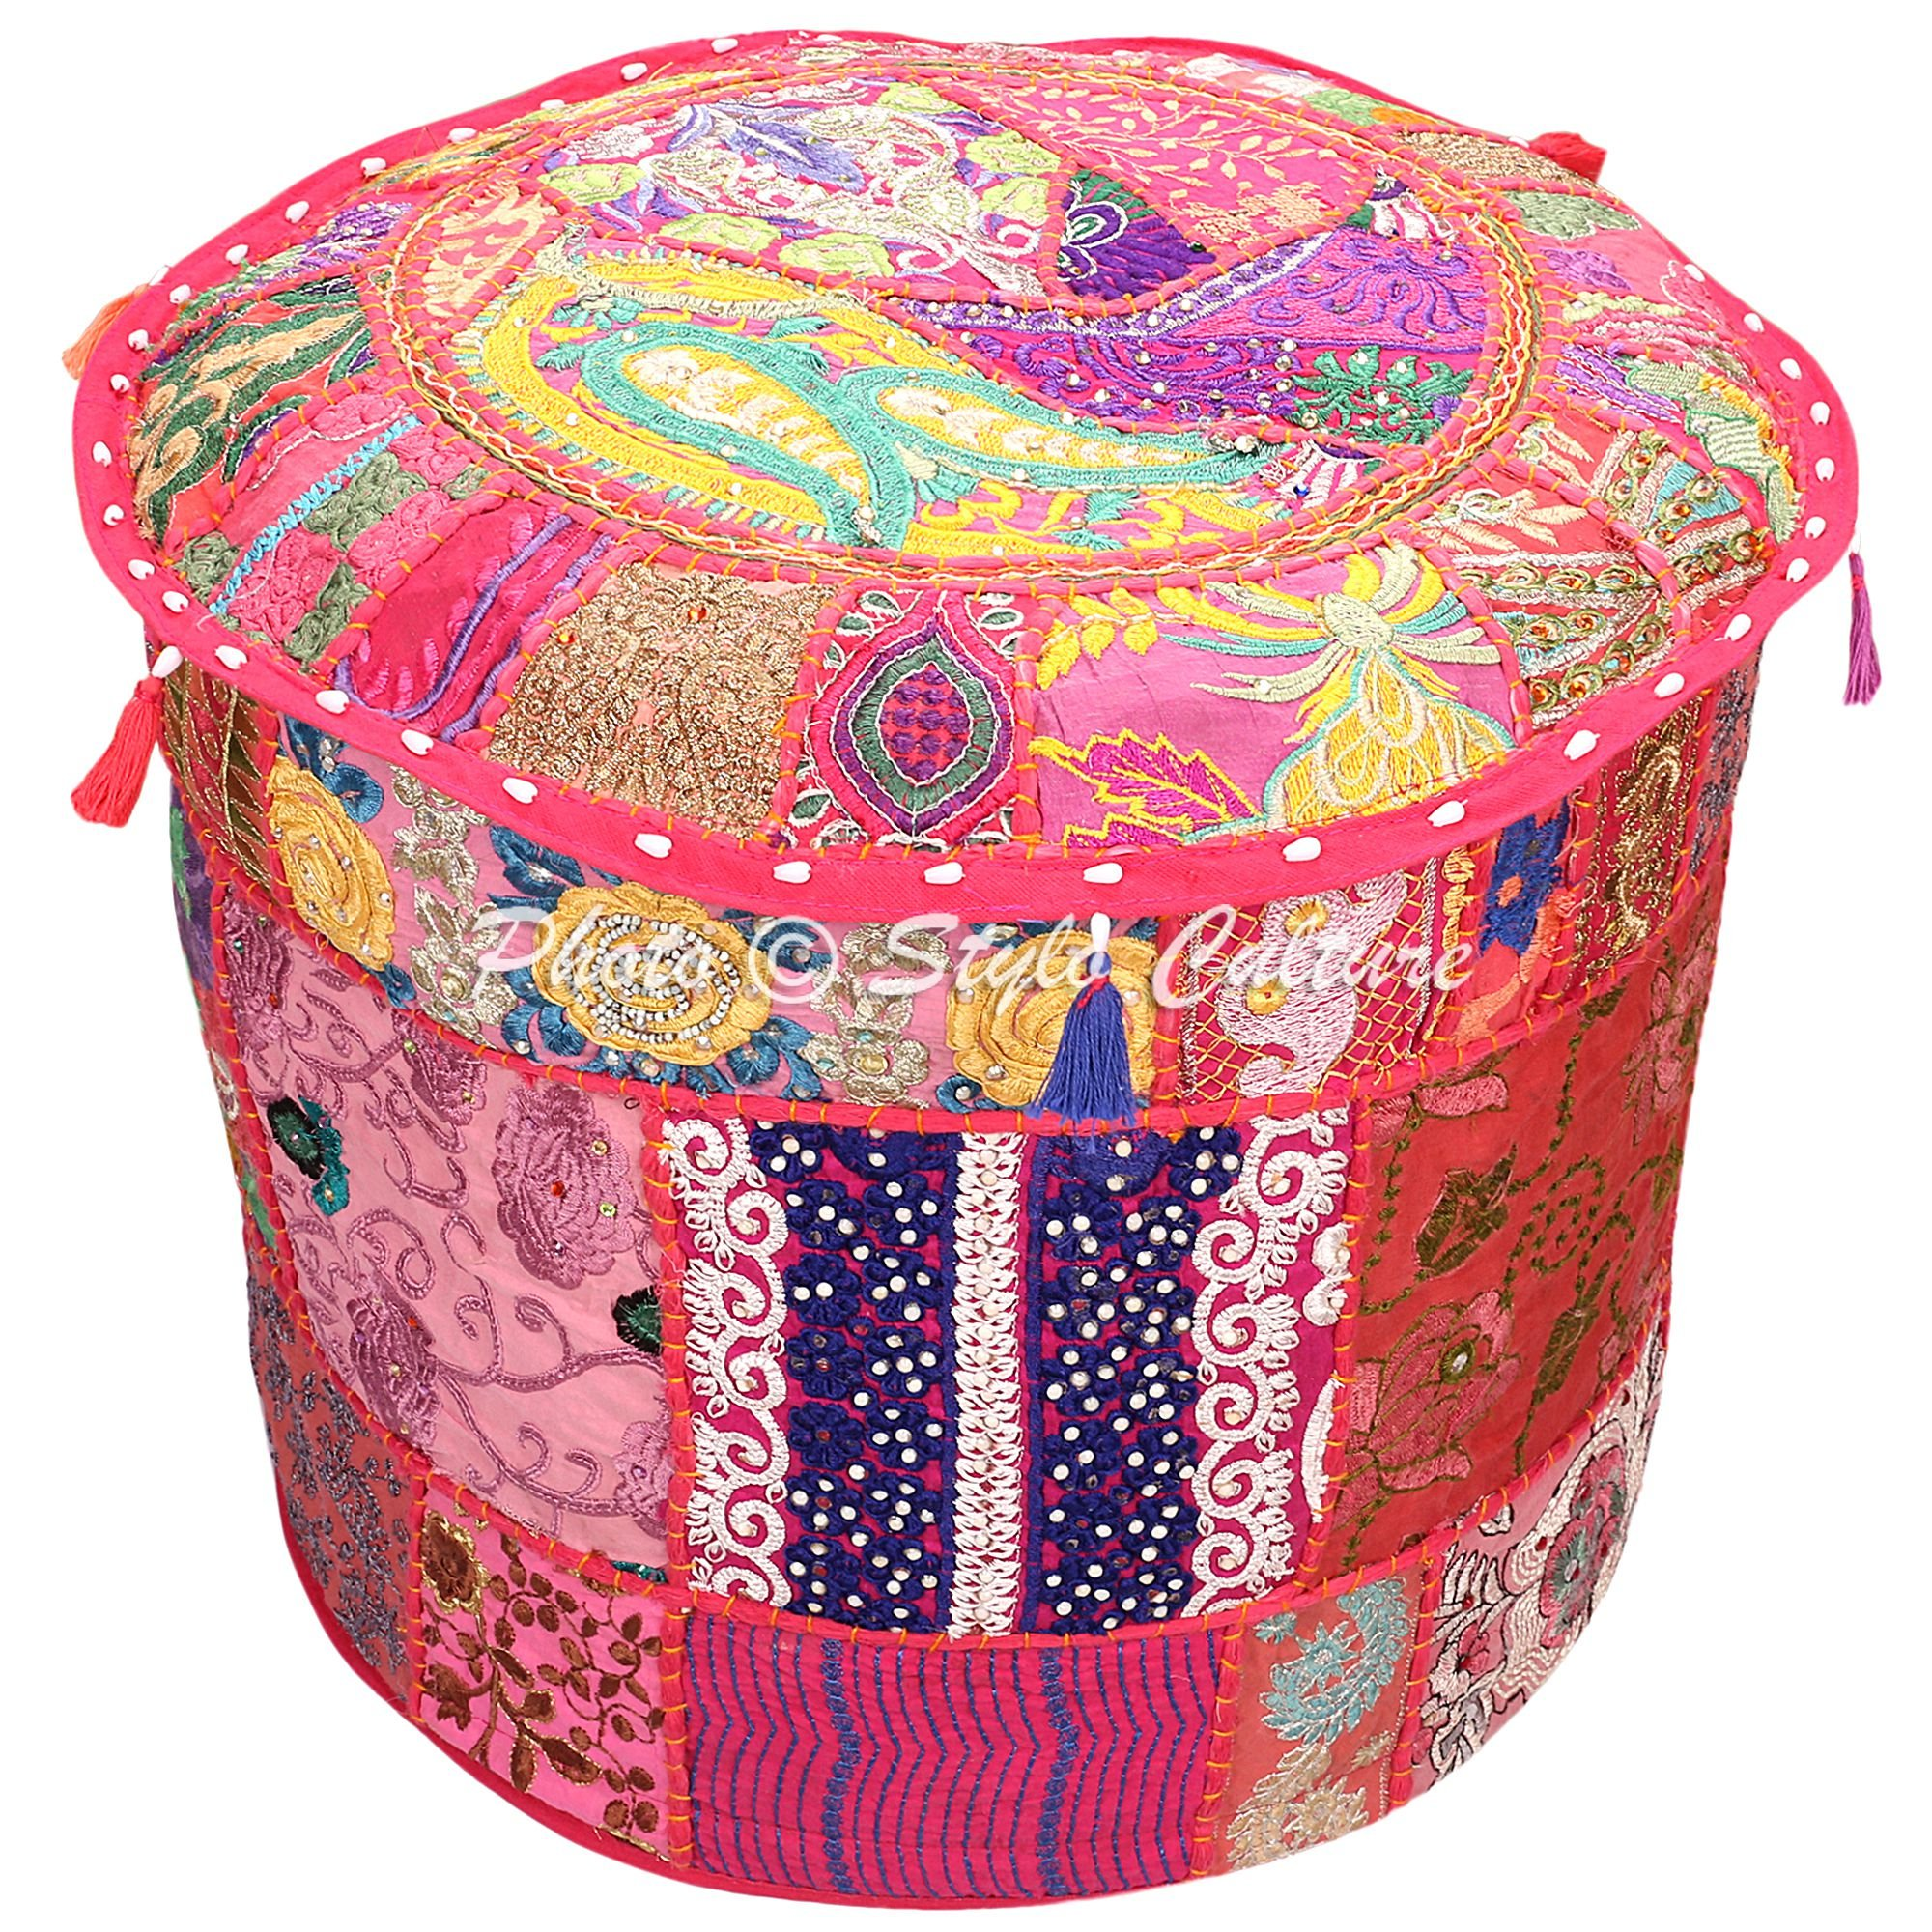 Stylo Culture Bohemian Round Pouf Ottoman Cover Indian Patchwork Embroidered Pouffe Ottoman Cover Pink Cotton Floral Traditional Furniture Footstool Seat Puff Cover (18x18x13)